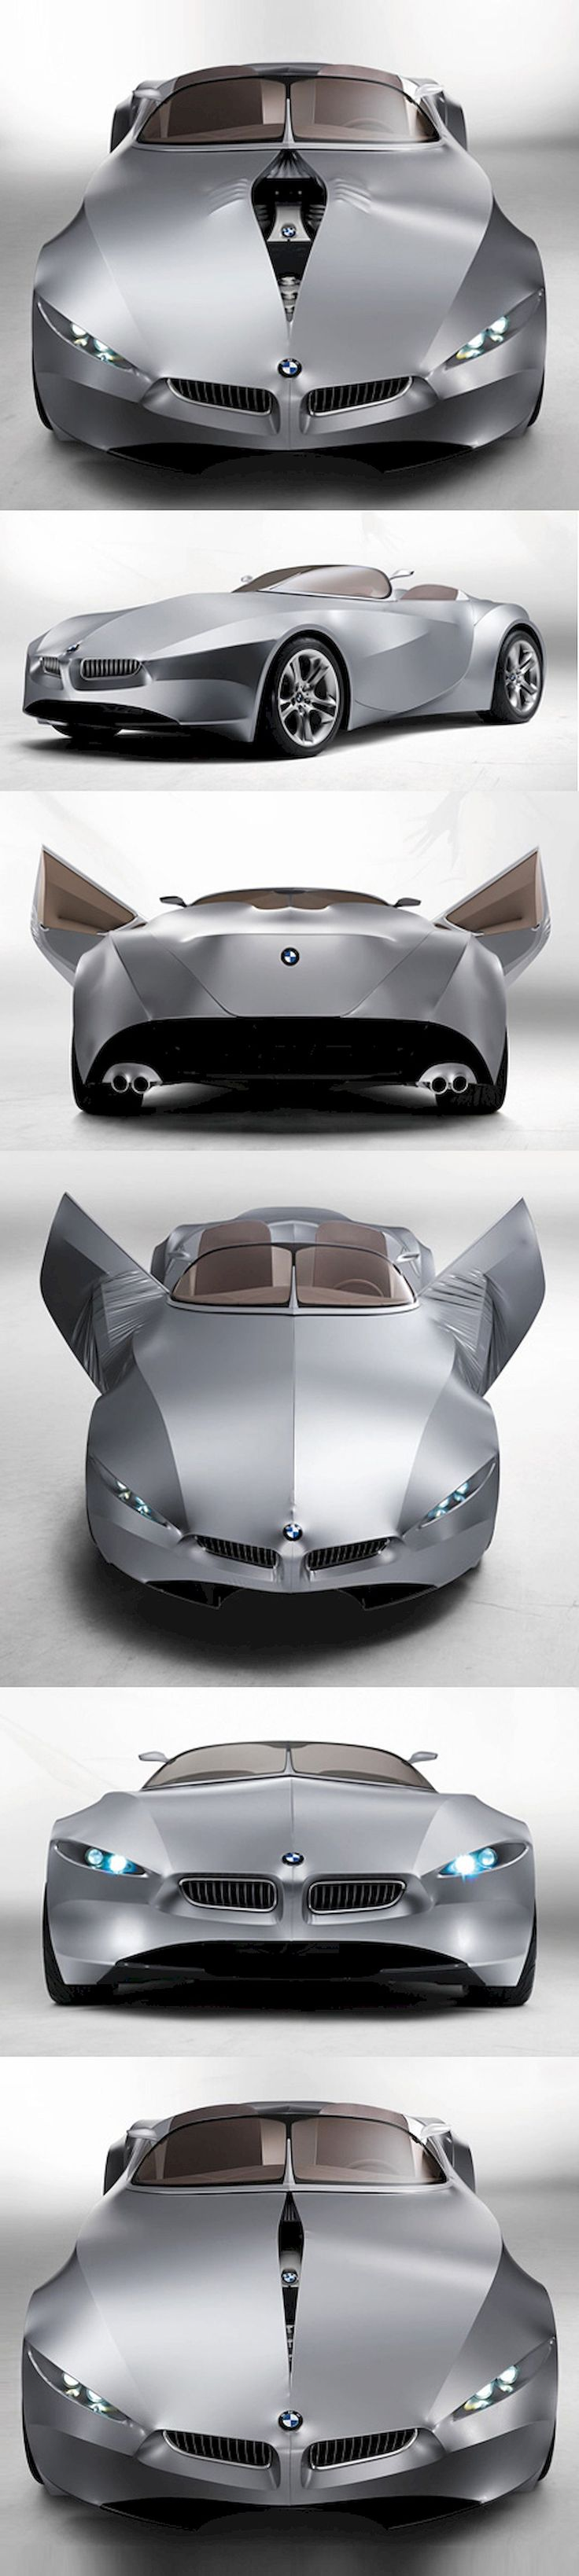 Super Cool Futuristic Car Designs (96 Photos) https://www.designlisticle.com/futuristic-cars/